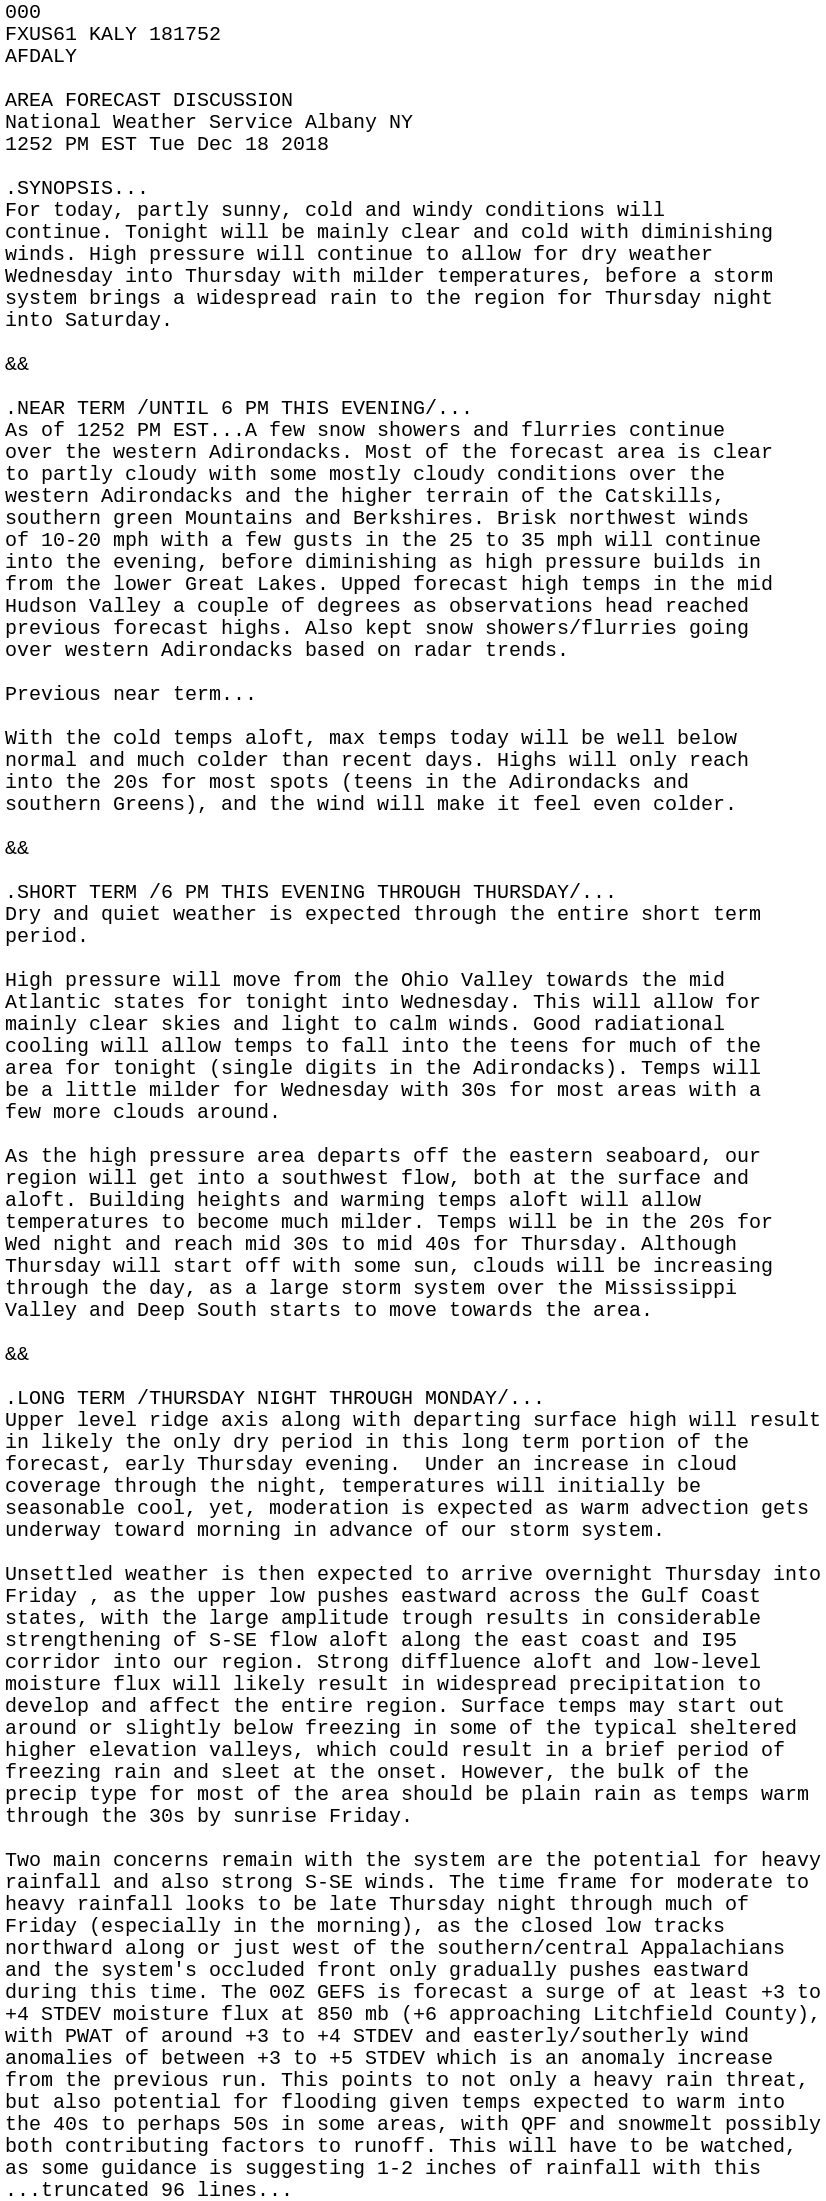 IEM :: AFD from NWS ALY